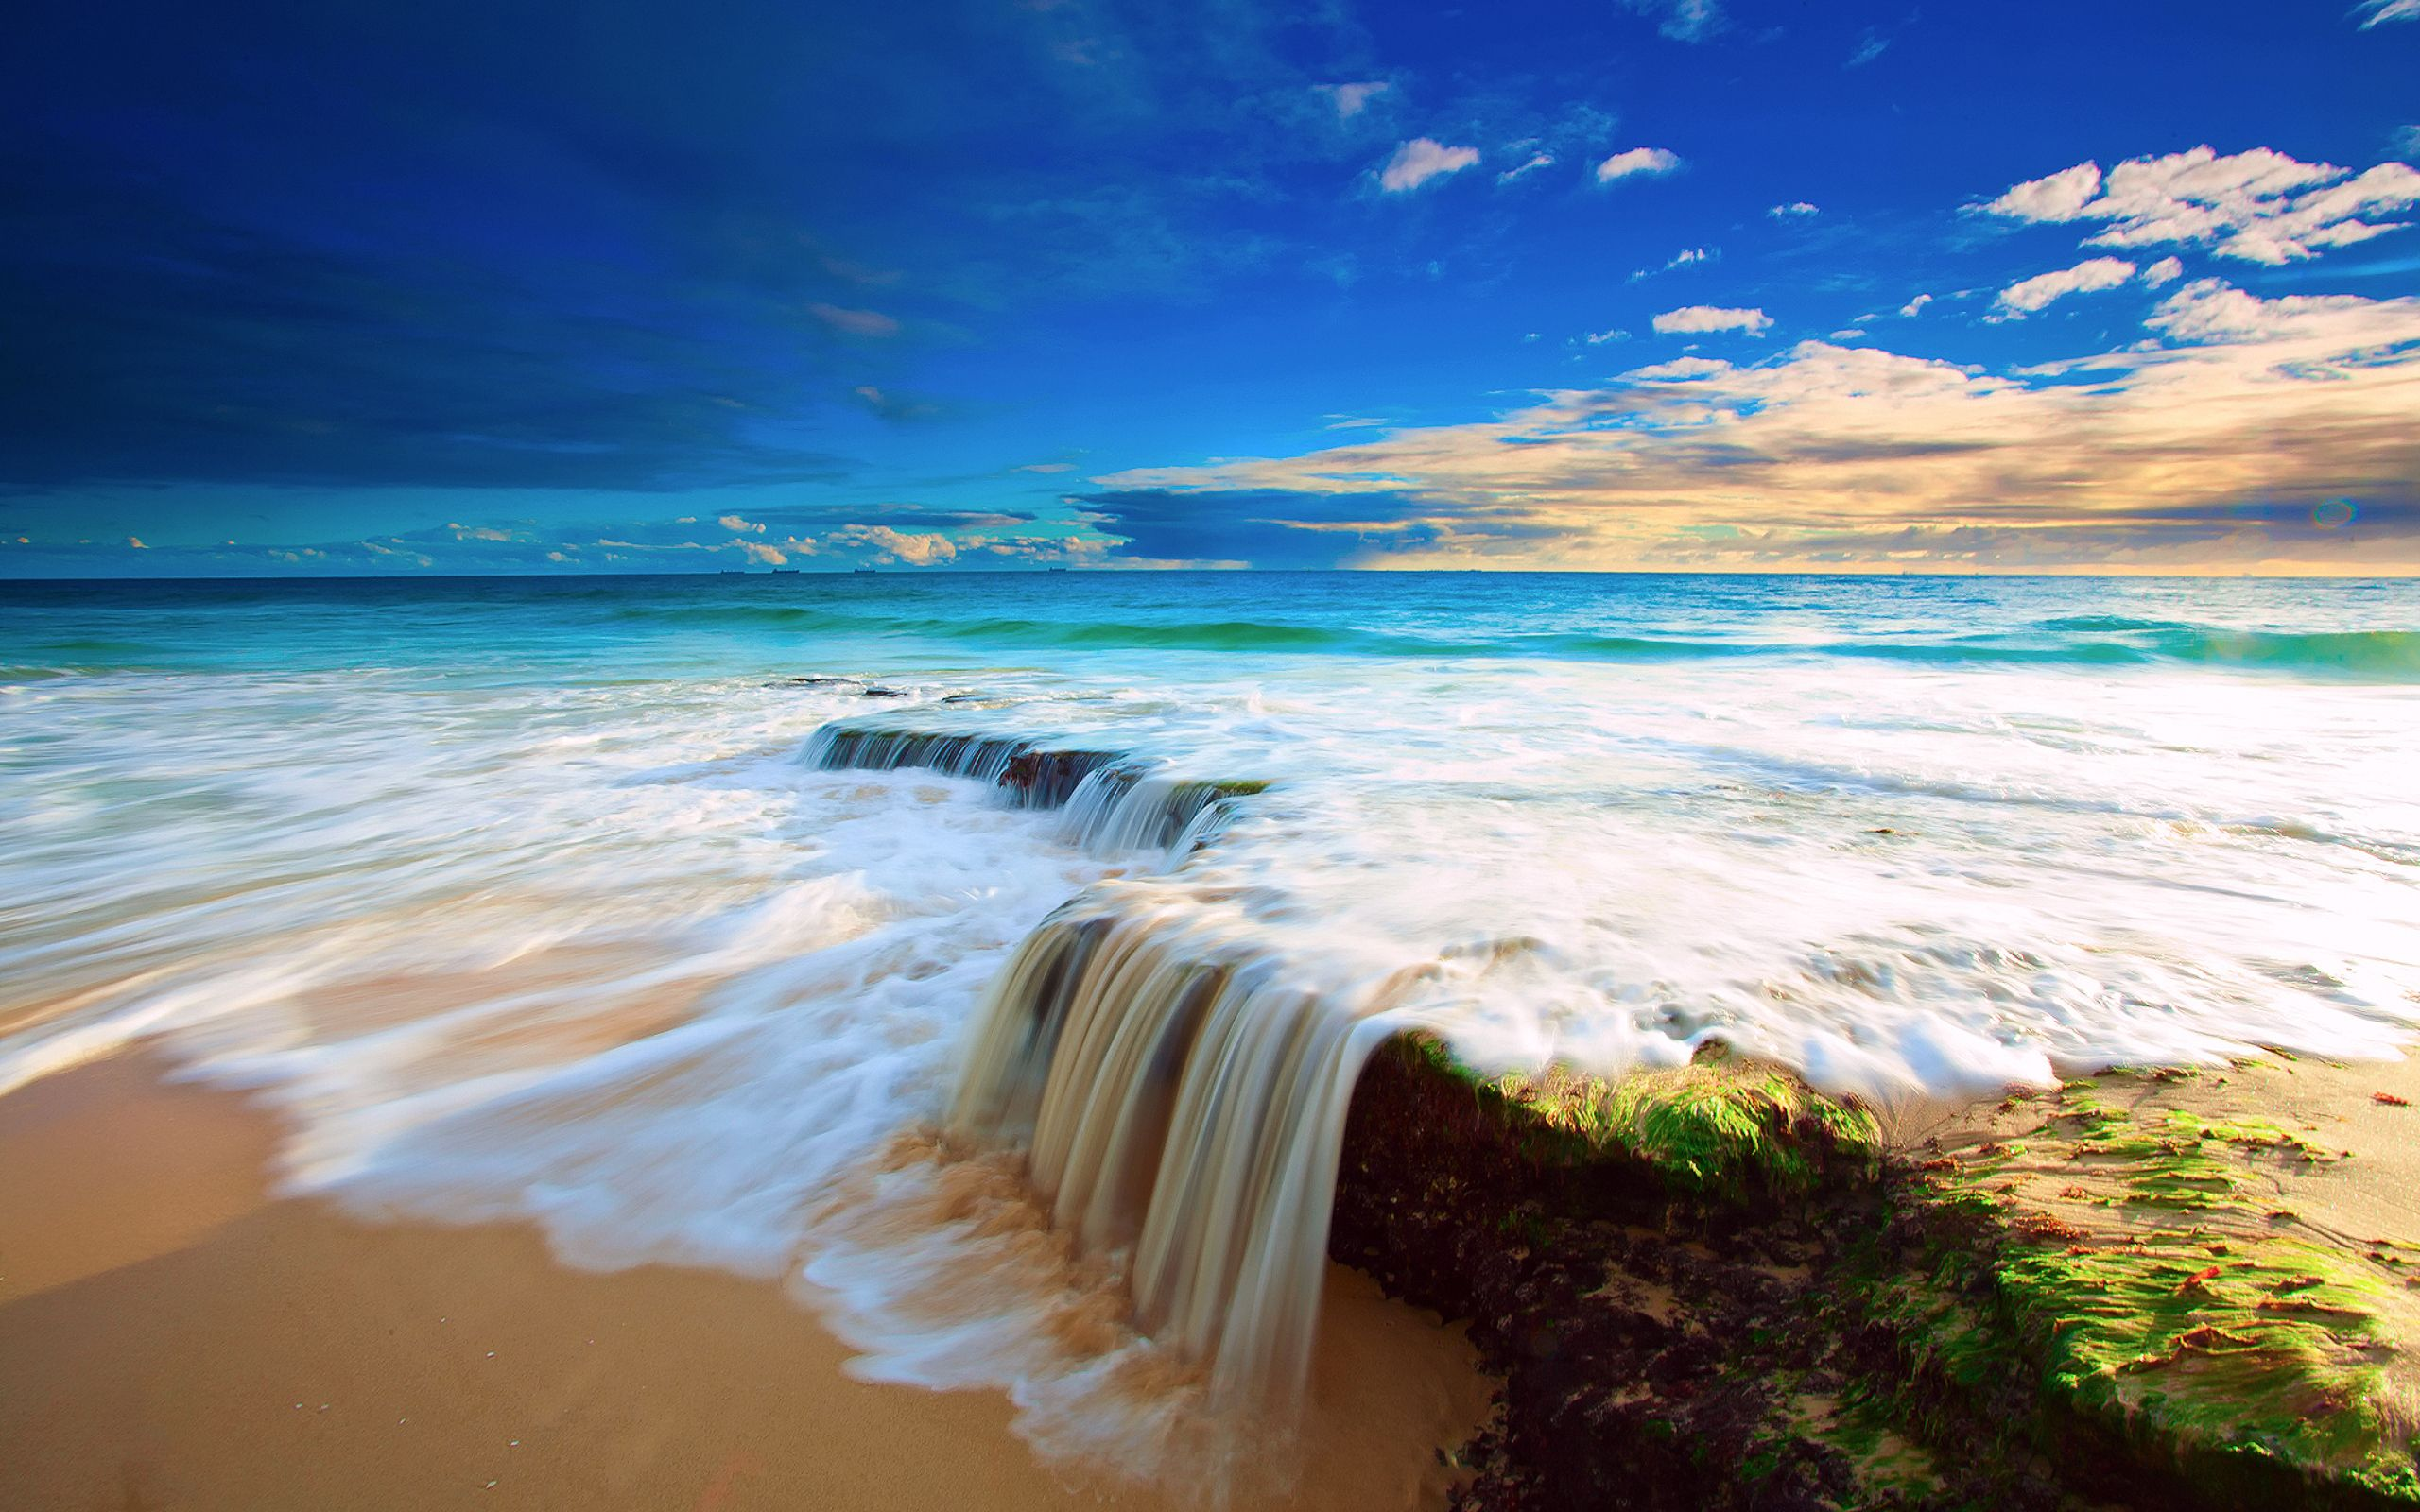 desktop background nature ocean images 6 high definitiona™